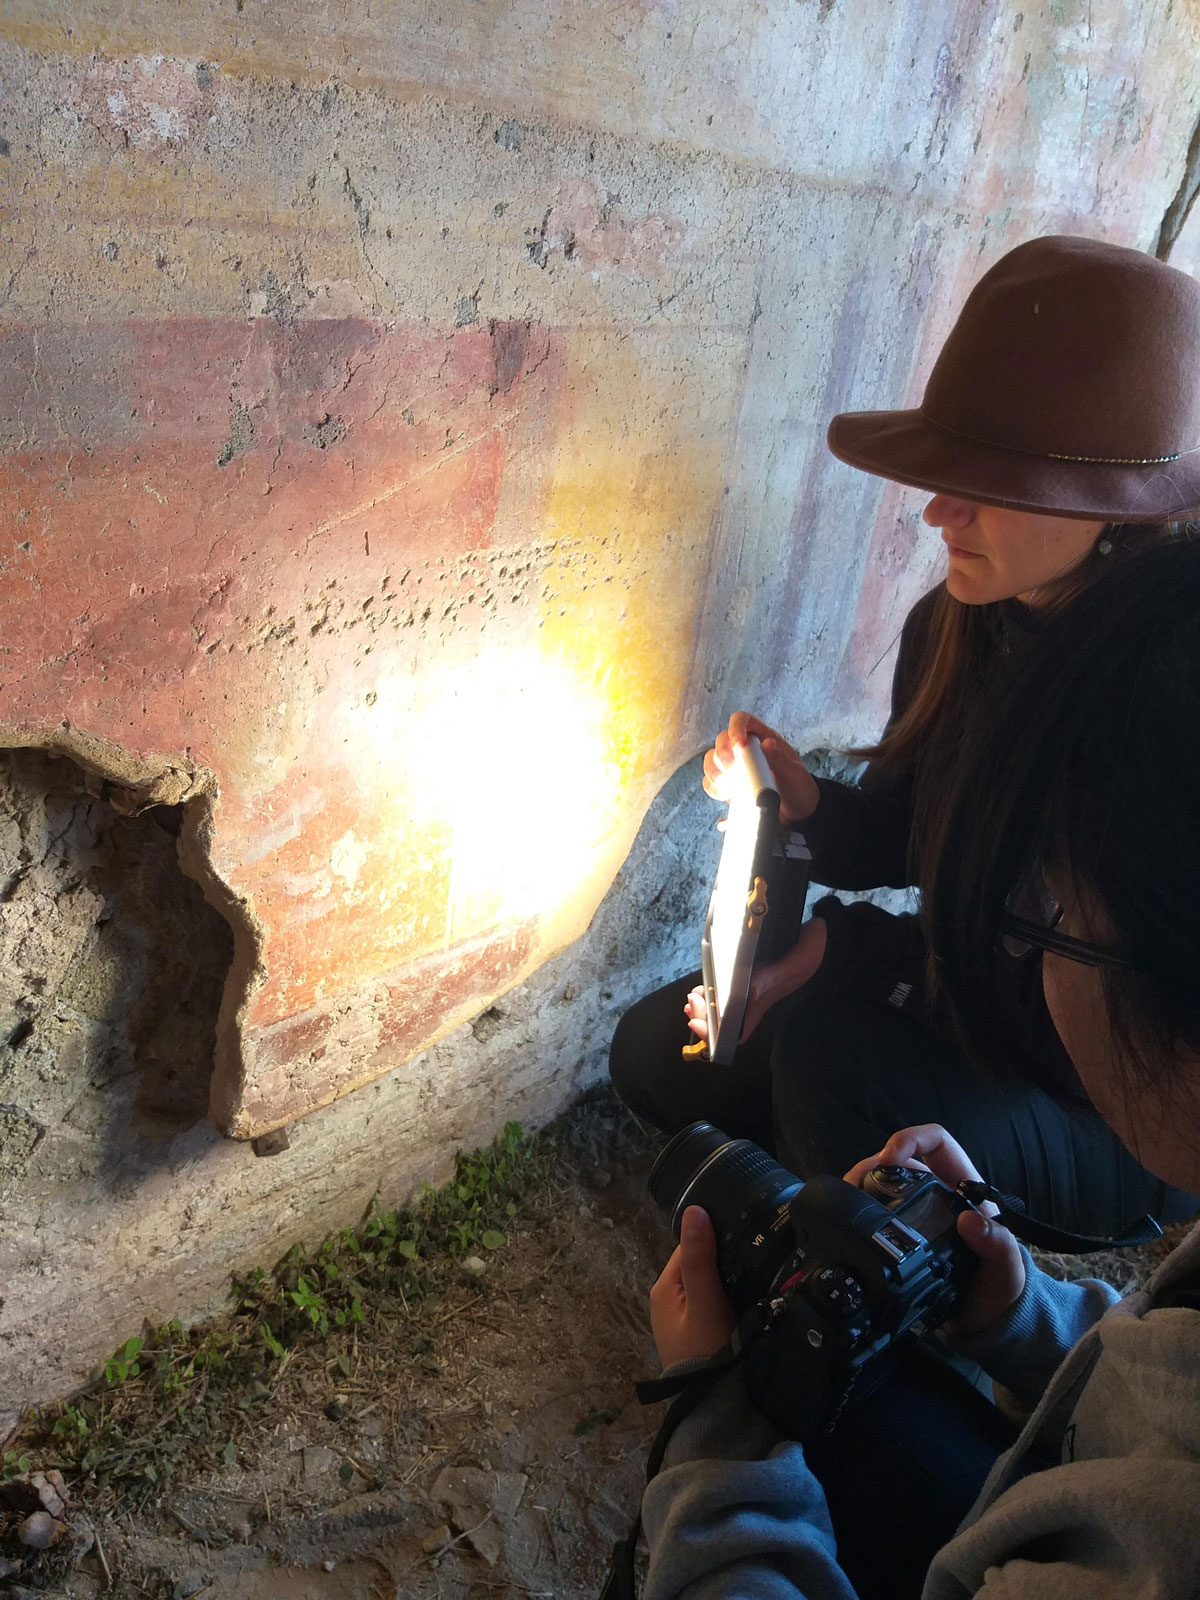 two researchers kneel in front of an ancient wall painting; one holds a camera, one holds a light source.